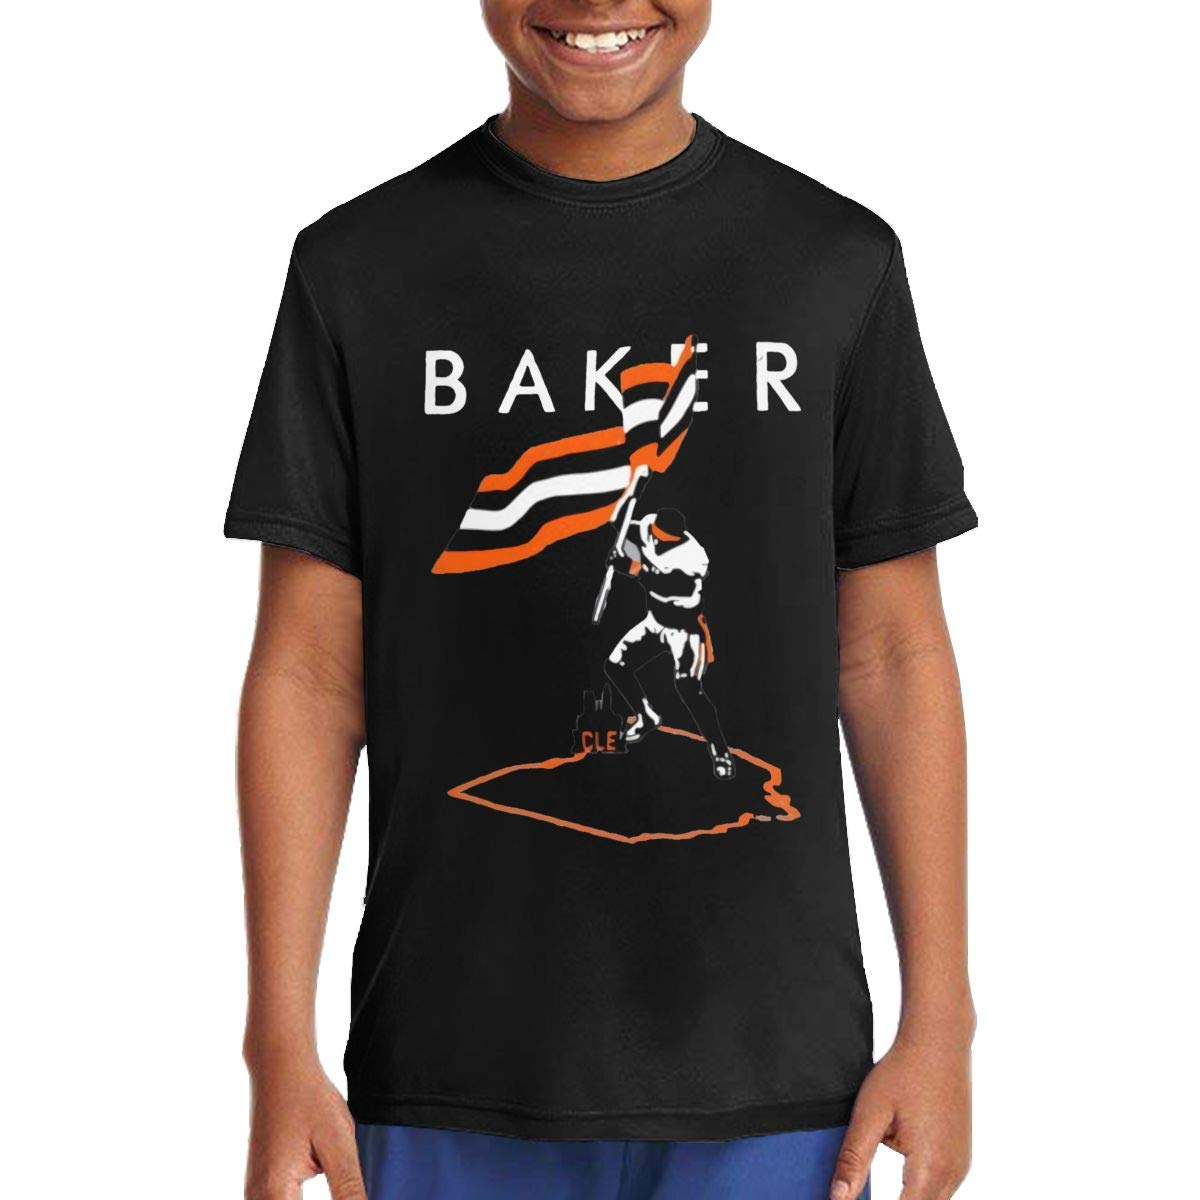 Baker Mayfield Flag Plant Music//Rock//Singer Cotton Round Neck Short Sleeve Shirts for Teen Boys and Girls Classic Fit Black